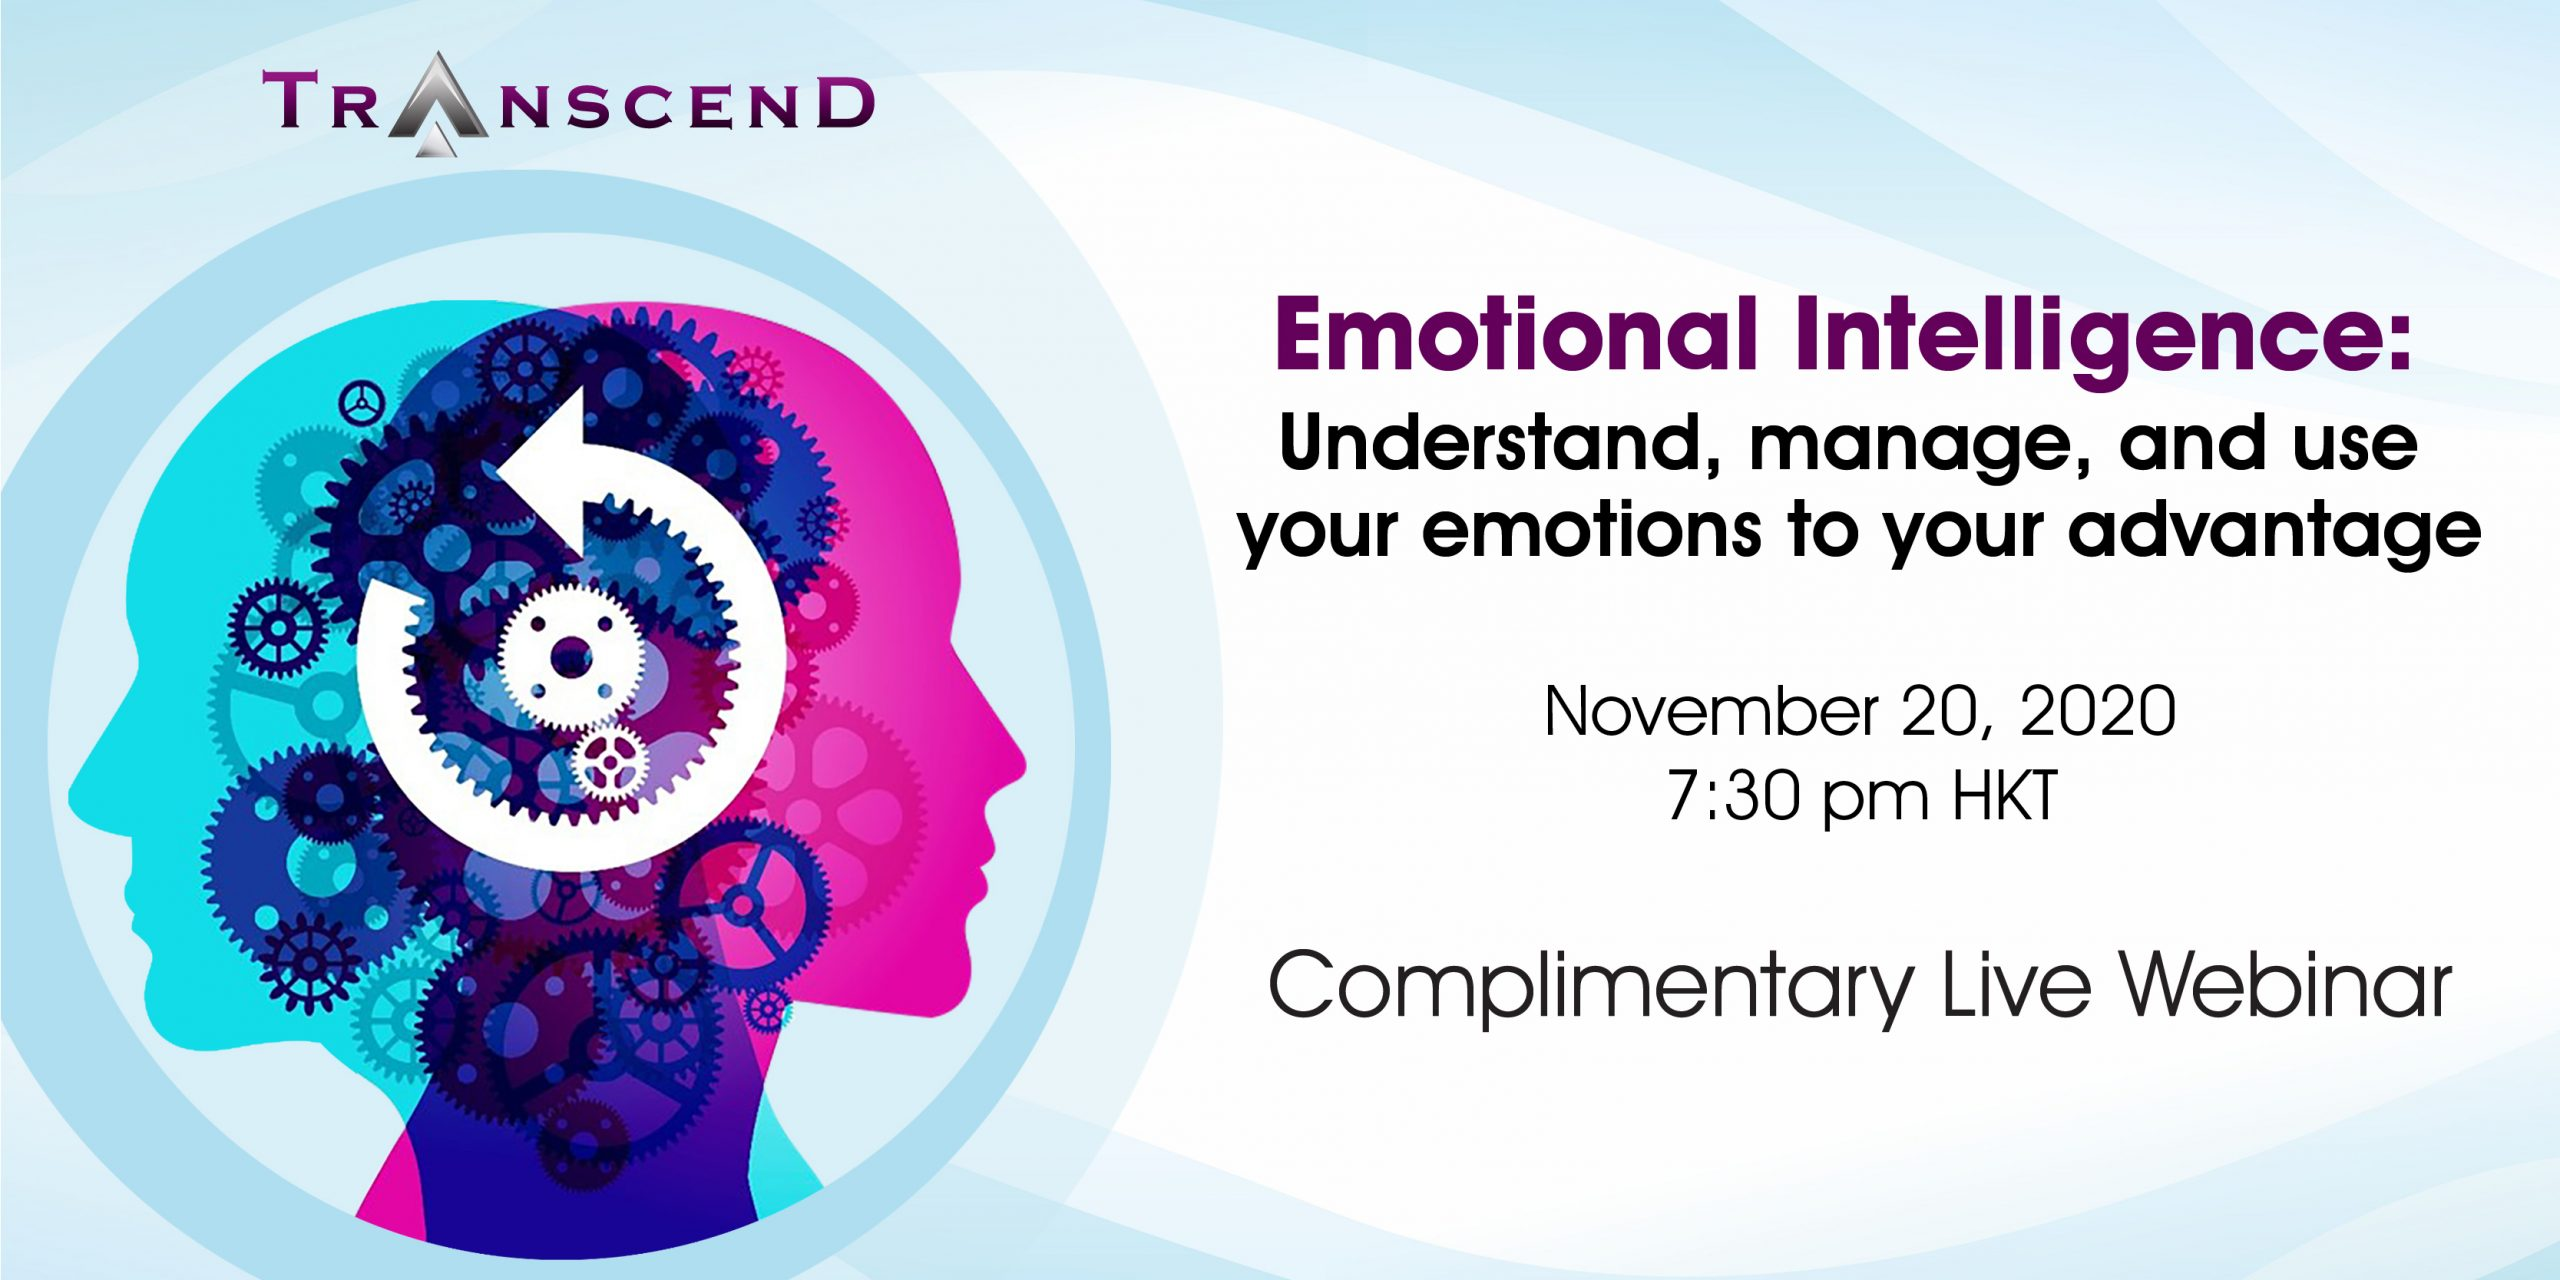 being emotionally intelligent 02 1 scaled